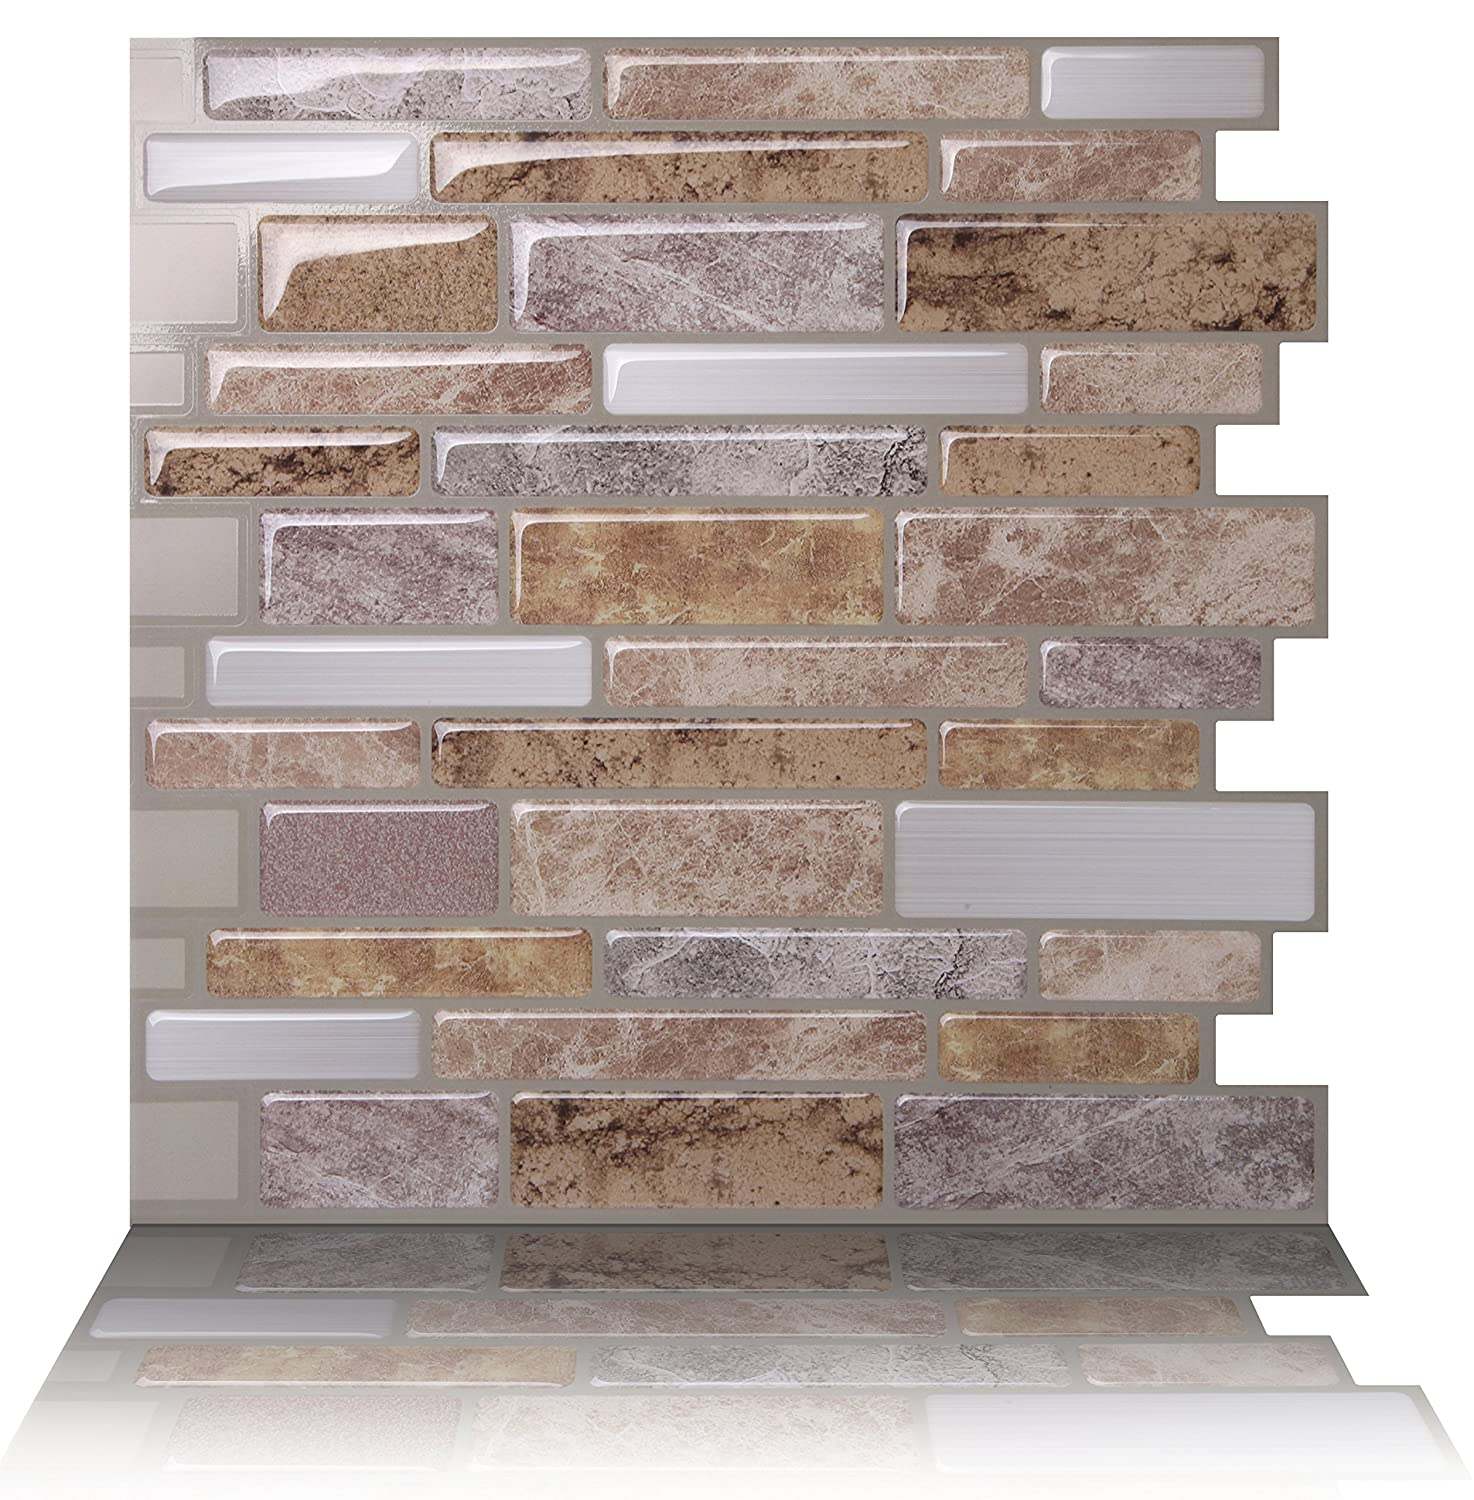 Peel And Stick Backsplash Tiles: High Quality Anti-mold Peel And Stick